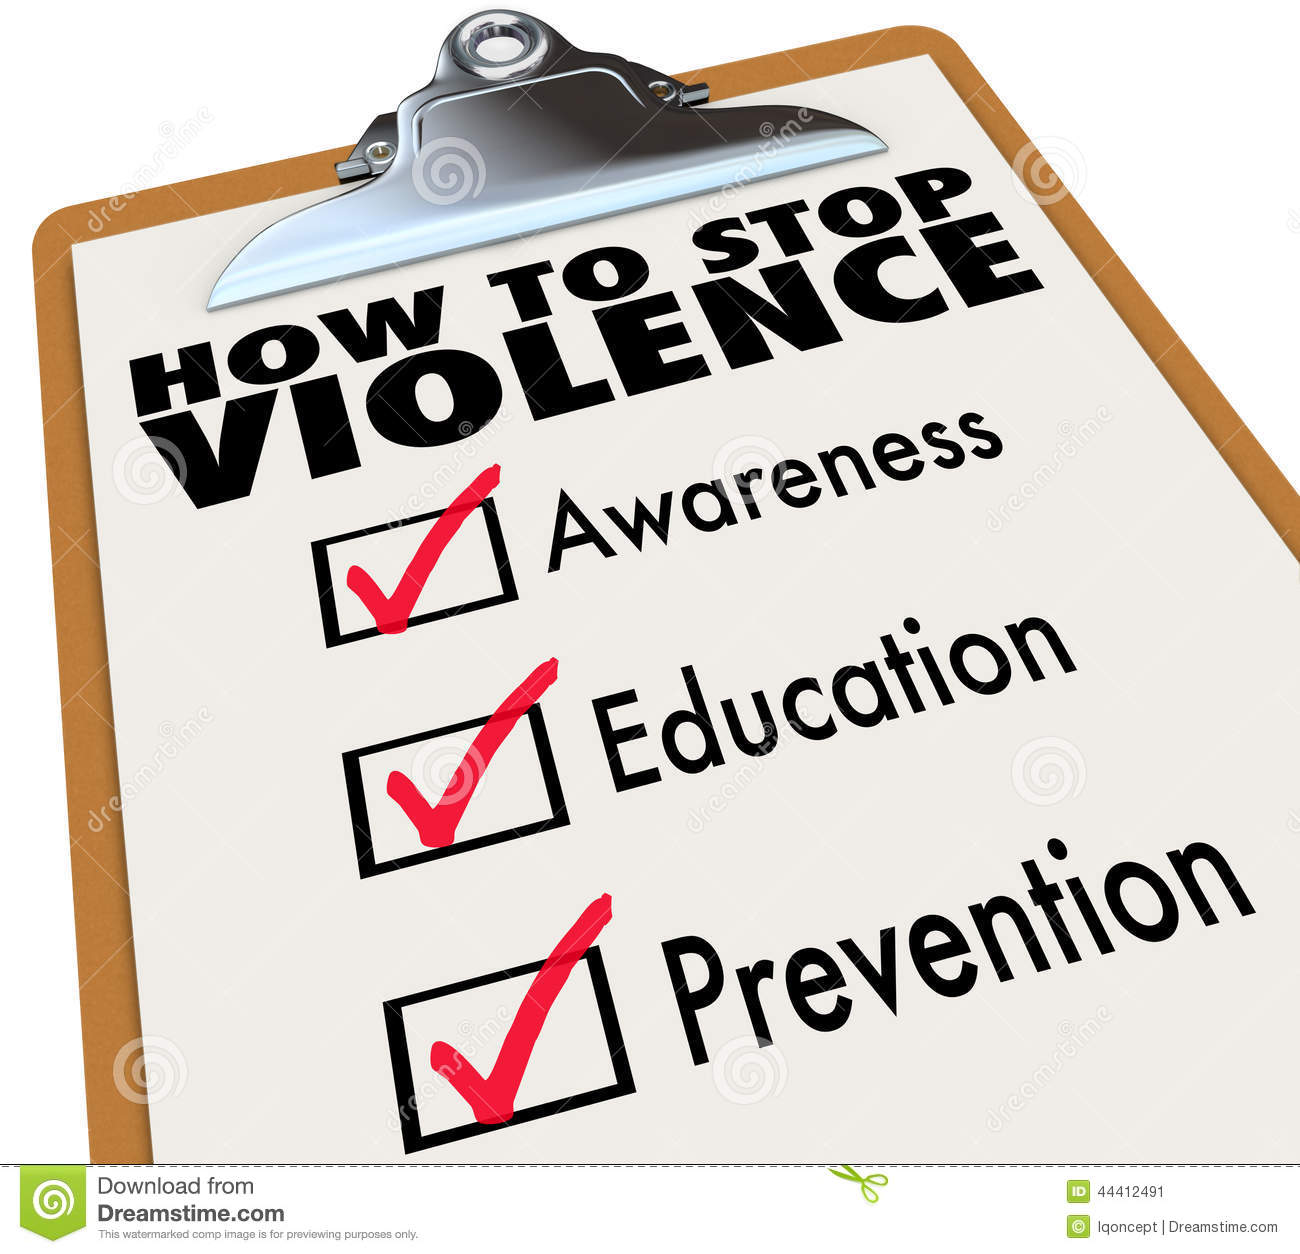 How To Stop Violence Checklist Awareness Education